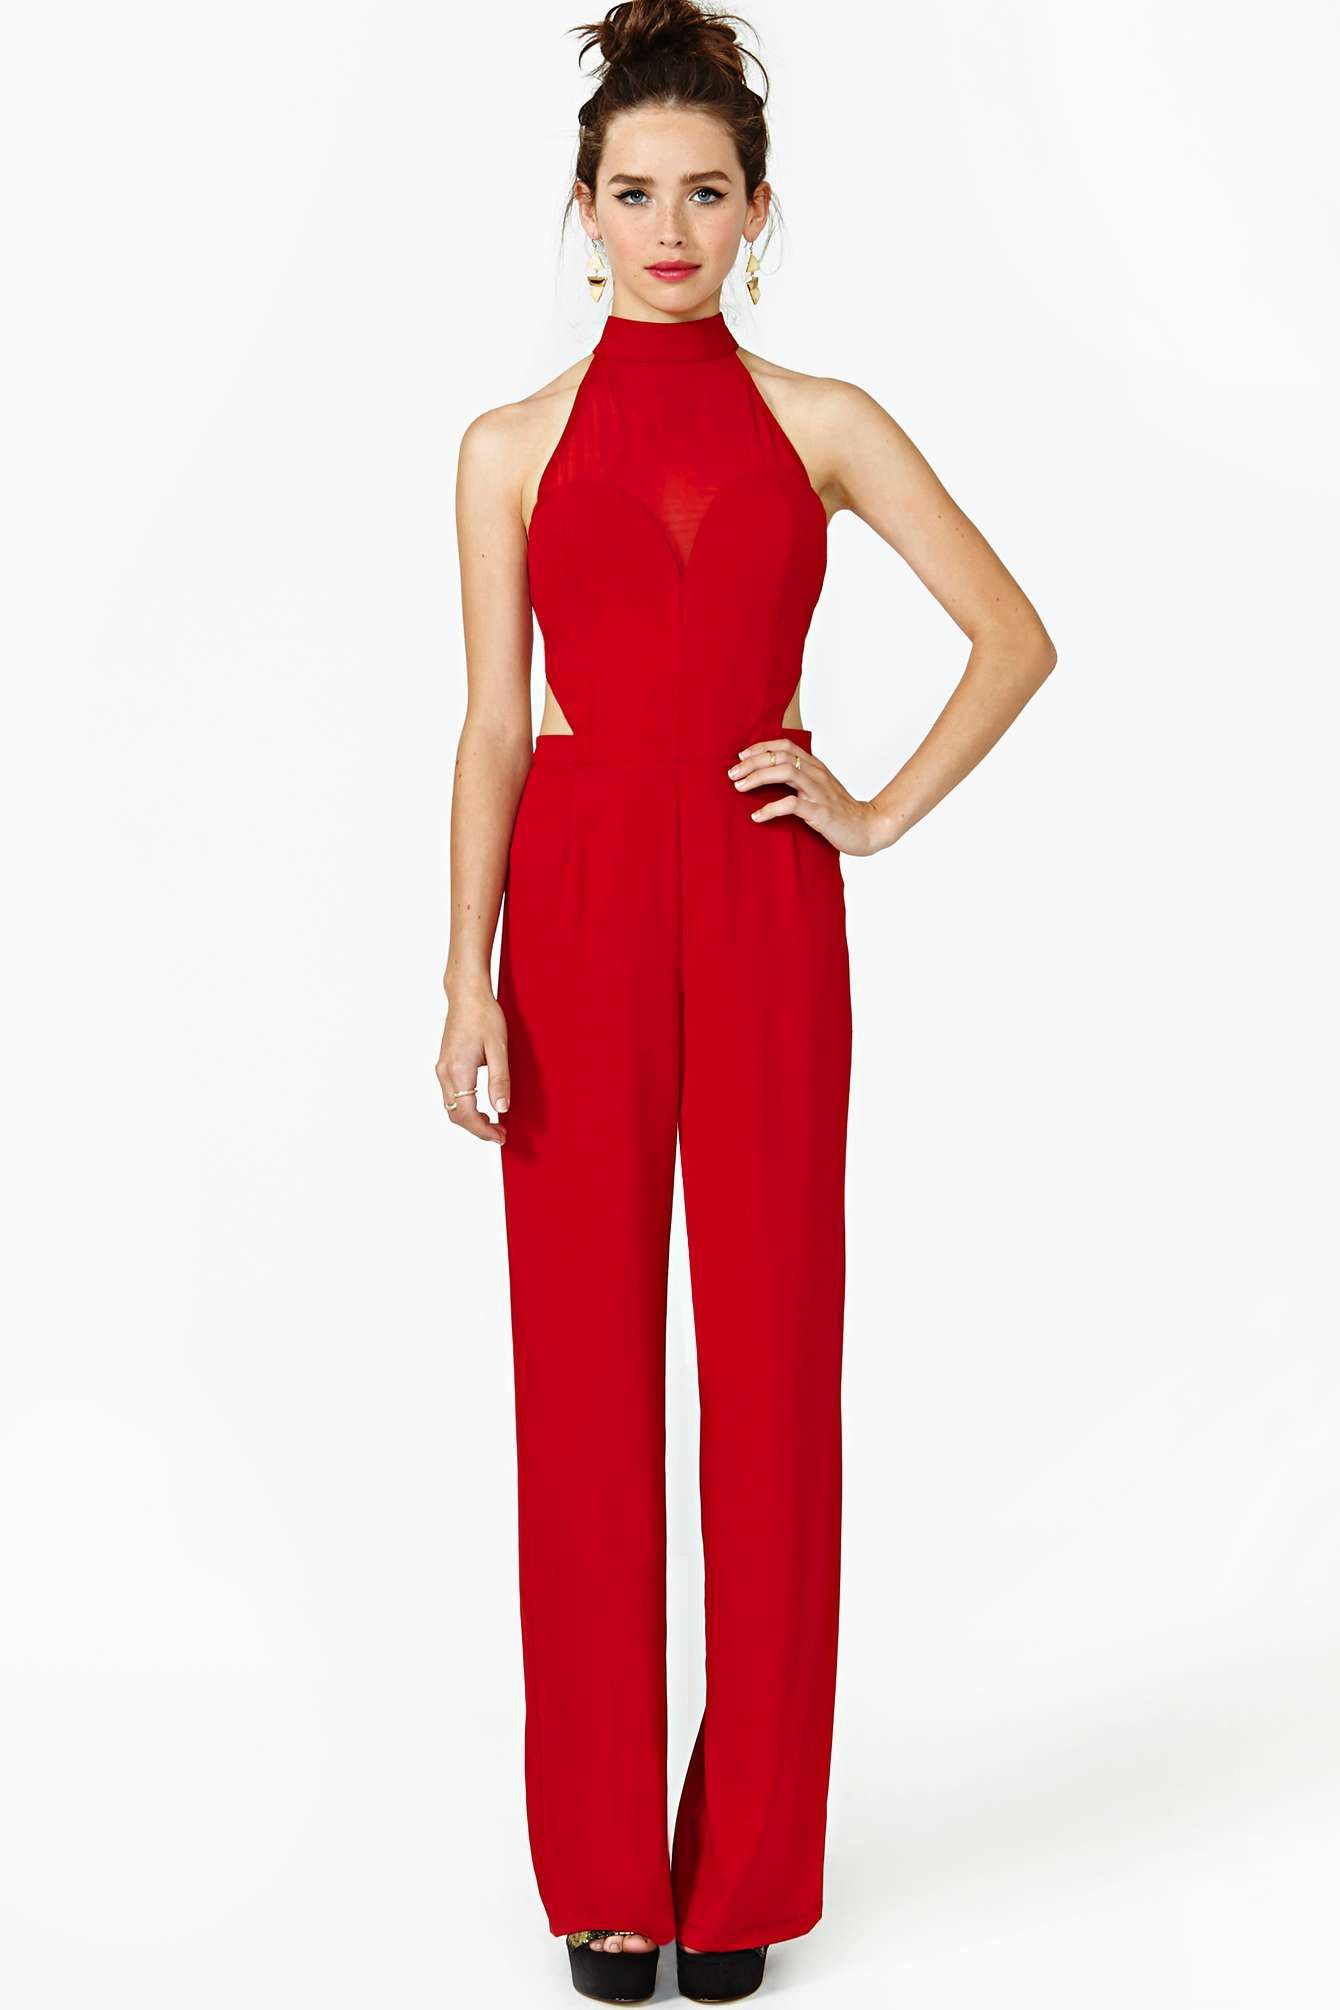 6dbbf3b5216a Heat Of The Moment Jumpsuit